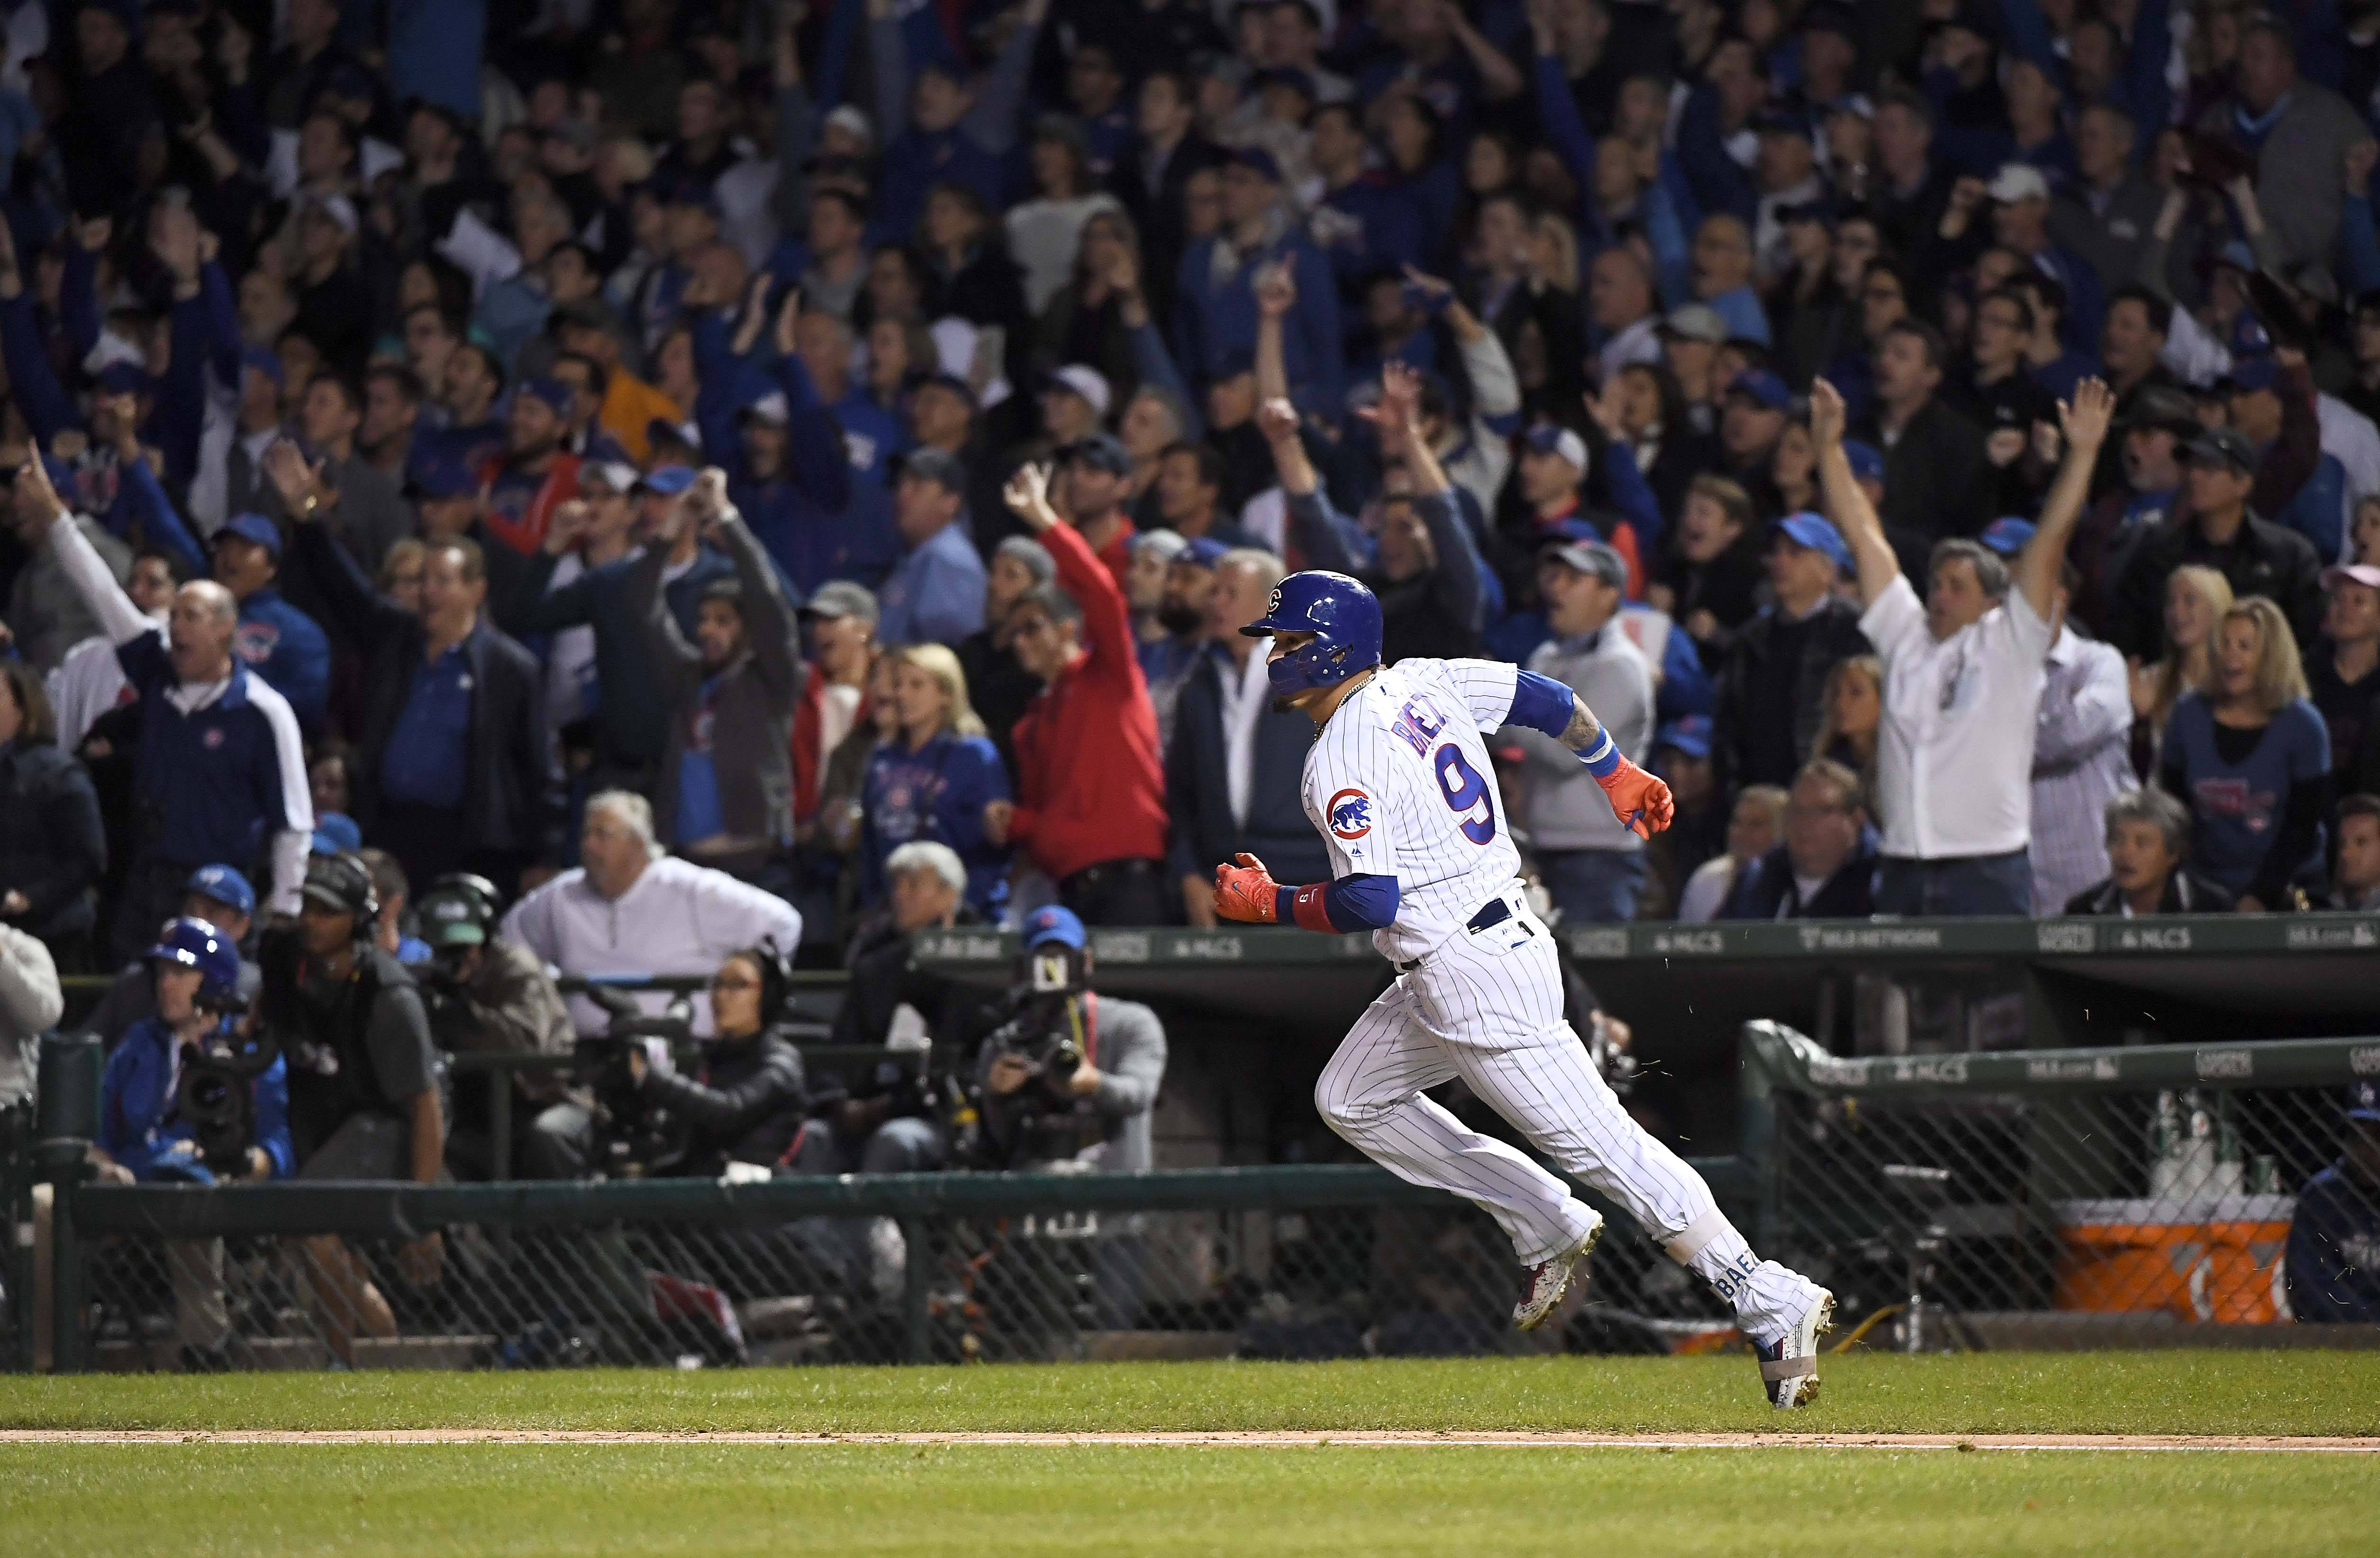 Chicago Cubs second baseman Javier Baez and the Wrigley Field fans watch his home run in the 5th inning during Game 4 of the National League championship series.